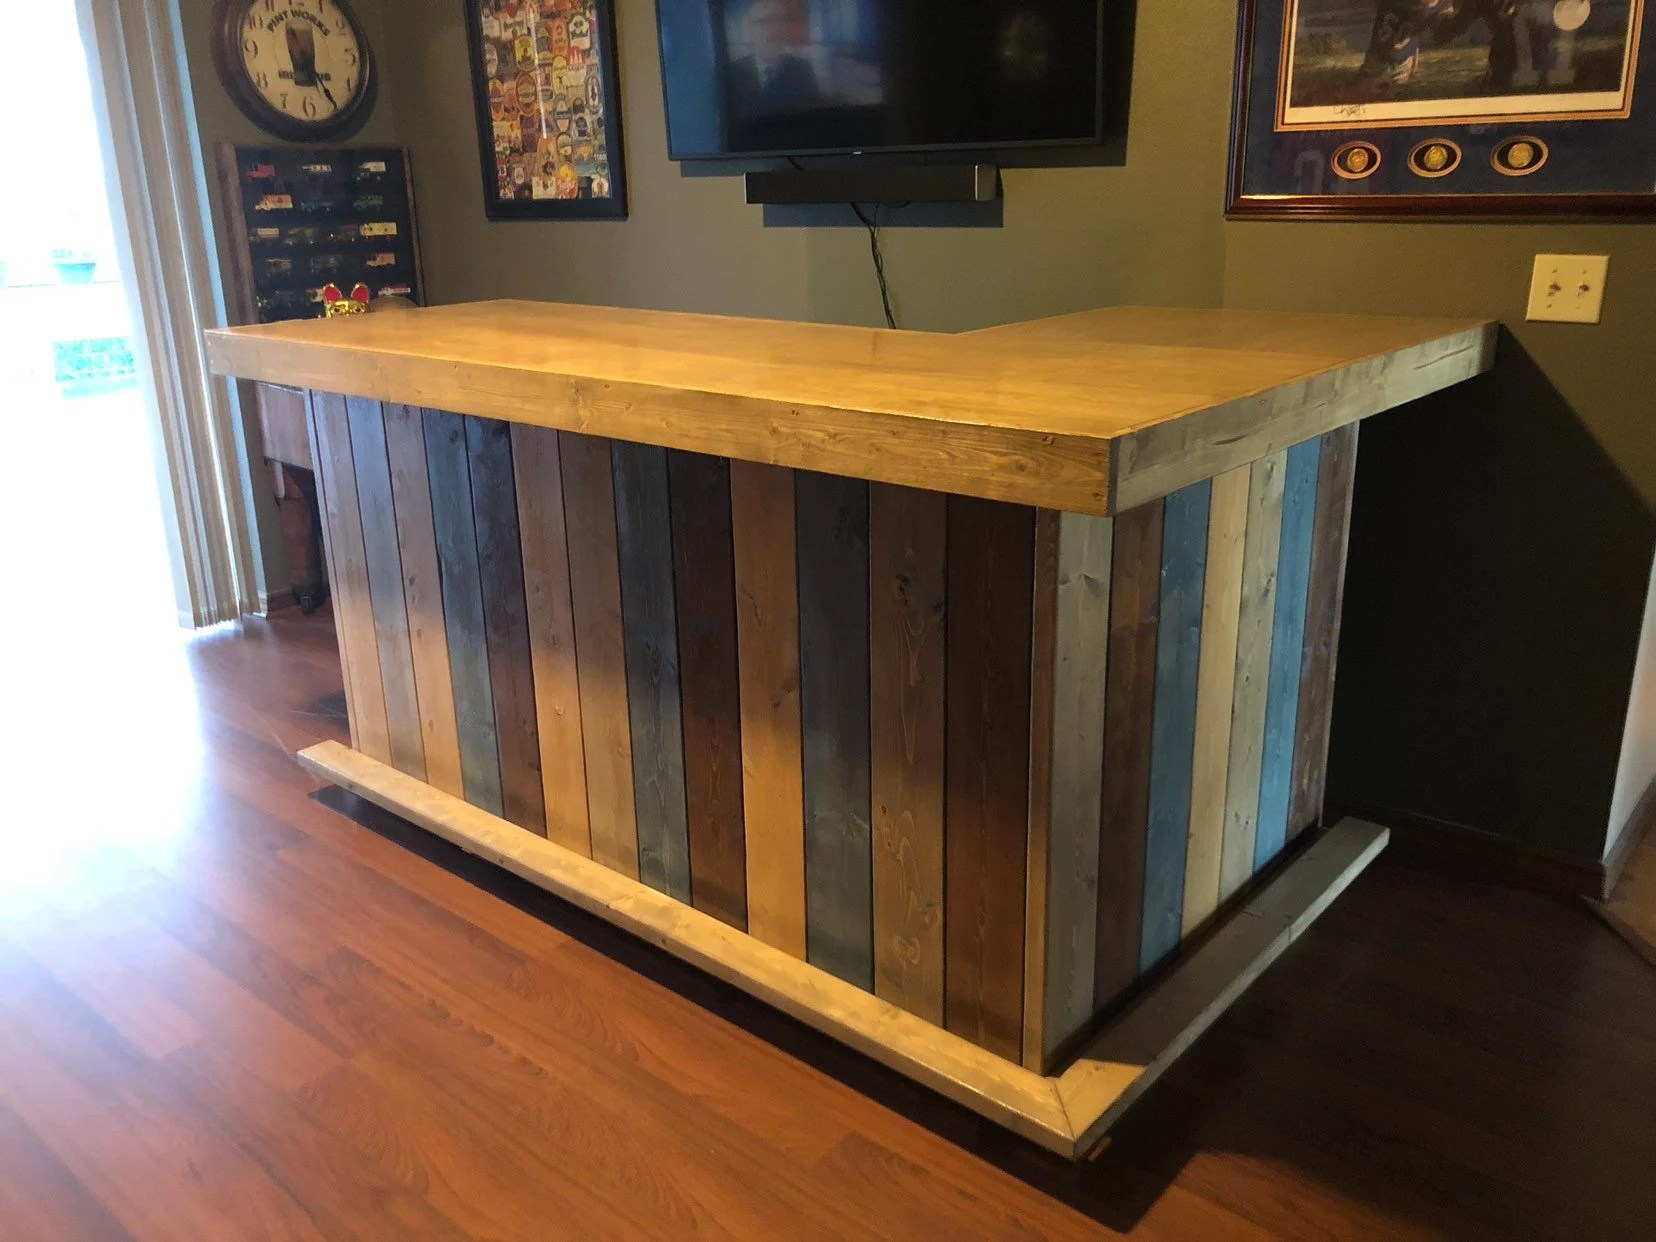 Rustic Style Bar The Rustic Blues Rustic Barn Wood Style Bar Sales Counter